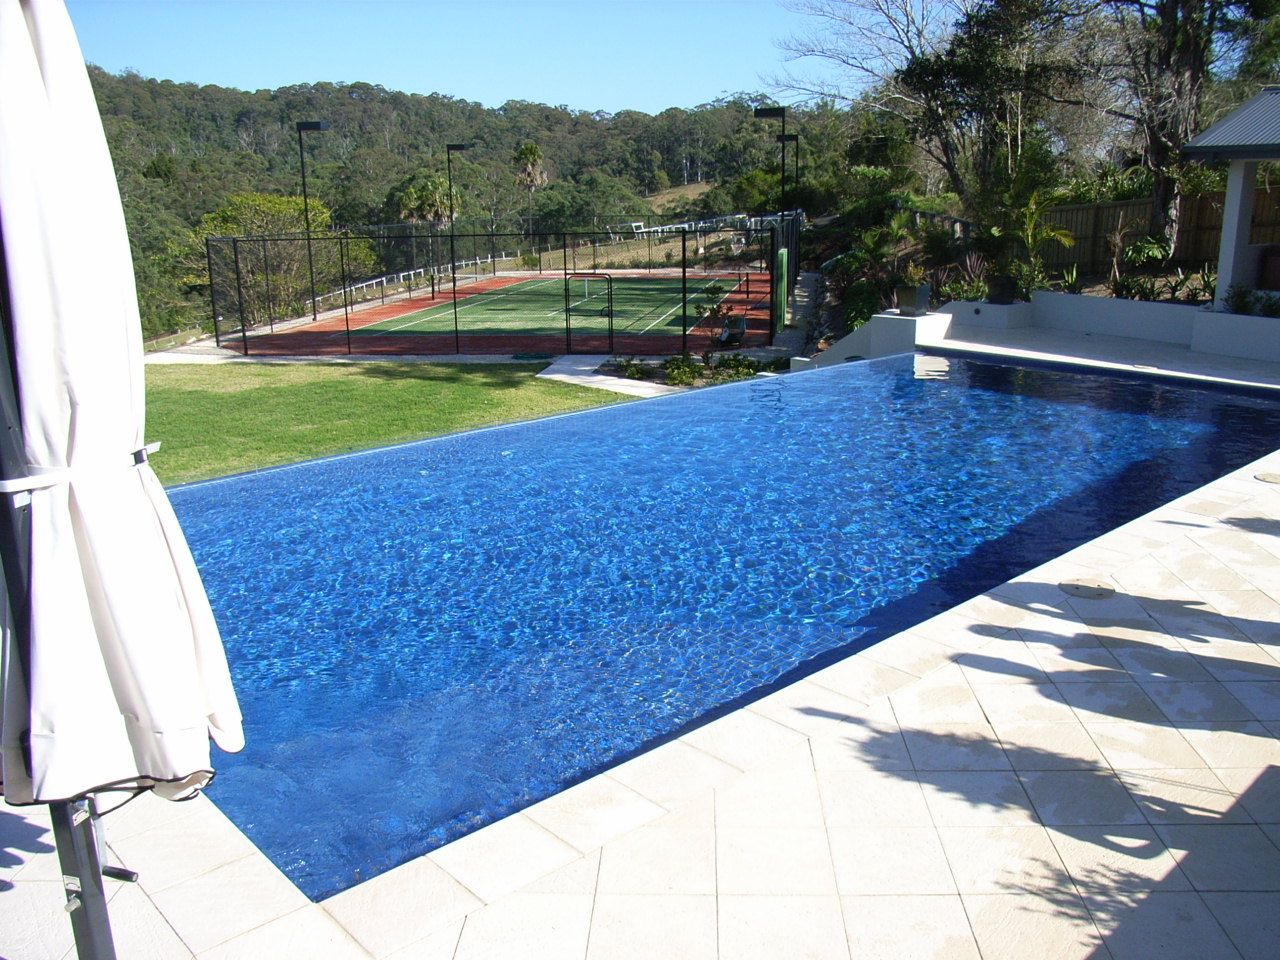 infinity pools - Google Search | pool ideas for DO | Pinterest ...